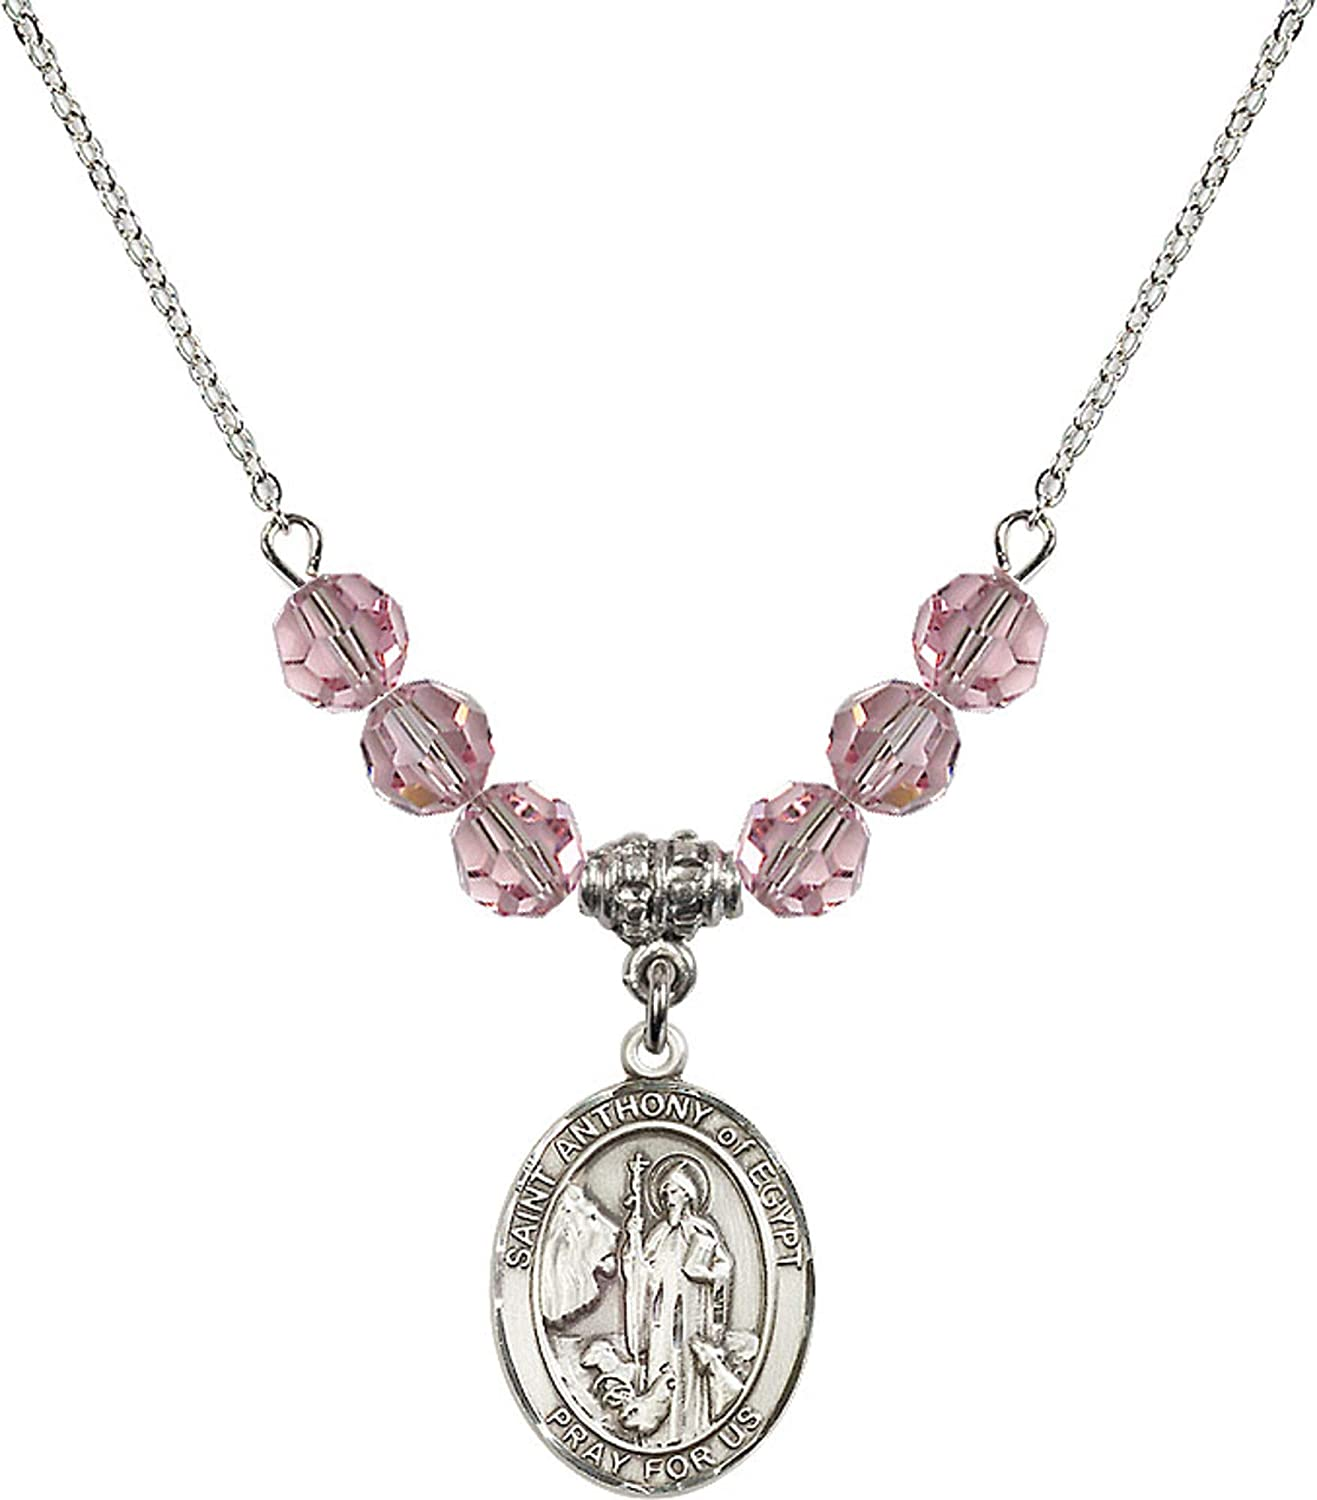 Bonyak Jewelry 18 Inch Rhodium Plated Necklace w// 6mm Light Rose Pink October Birth Month Stone Beads and Saint Anthony of Egypt Charm